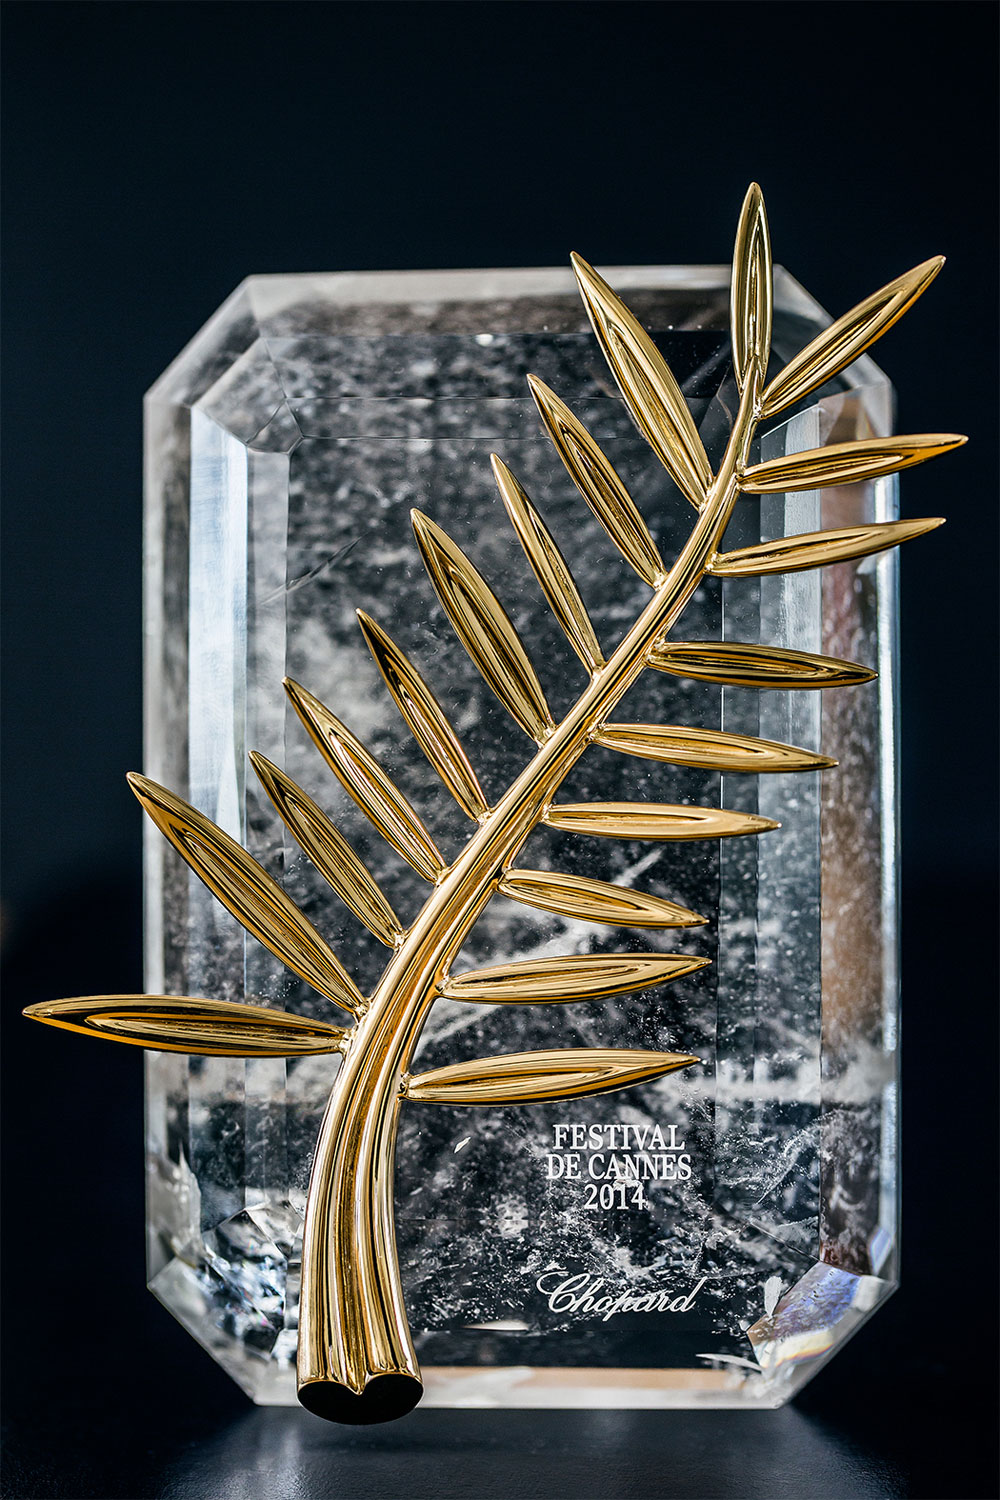 Chopard Palme d'Or de Cannes